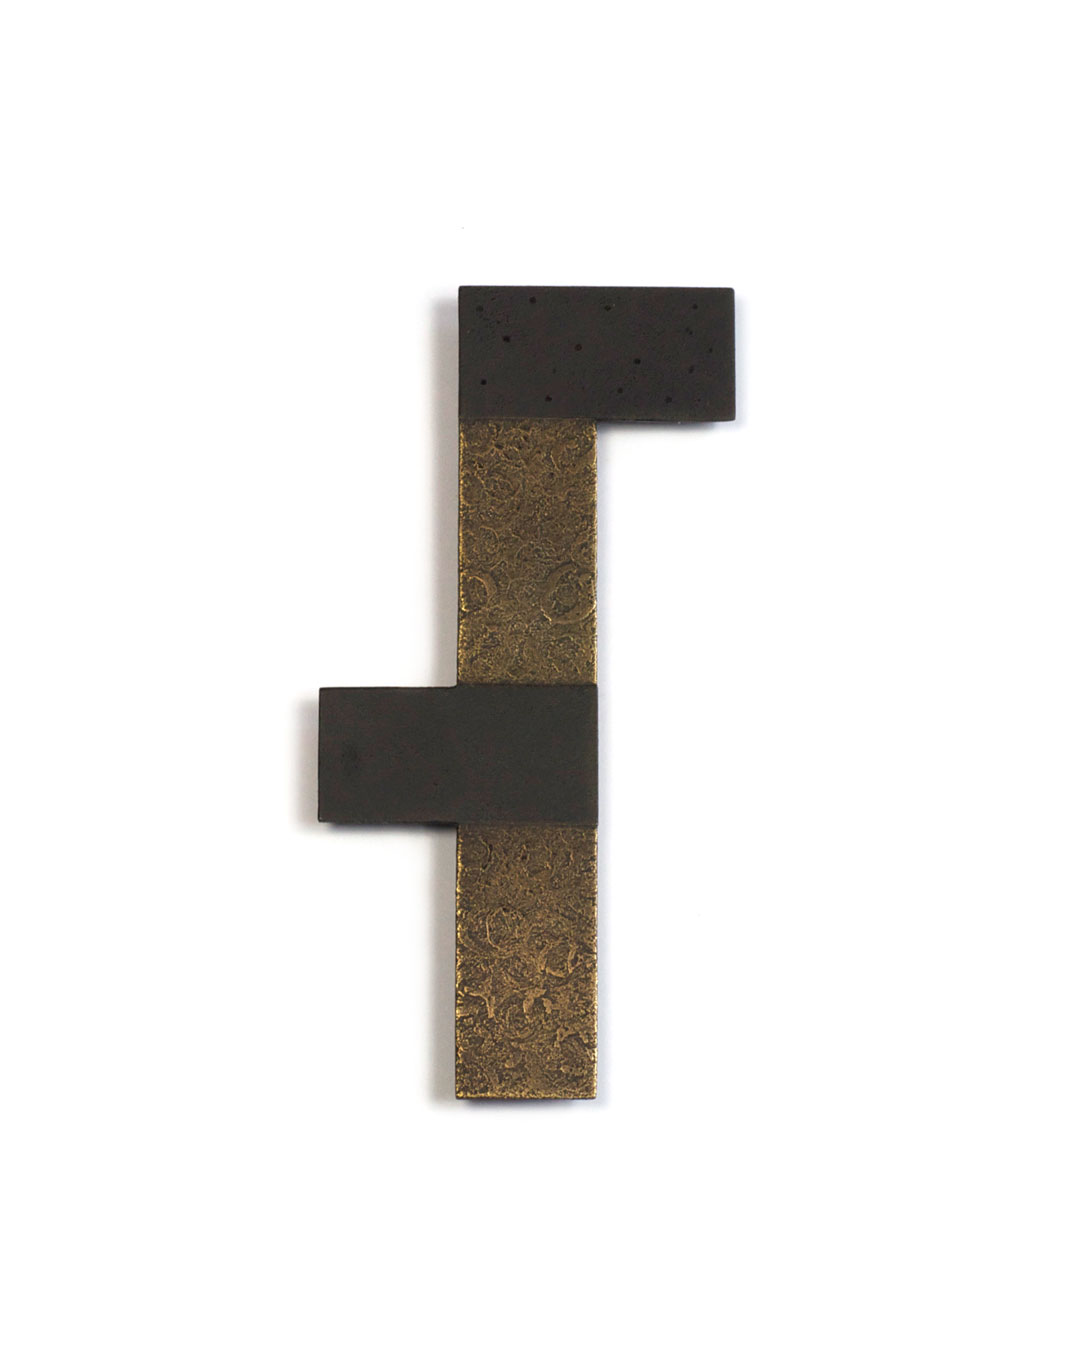 Tore Svensson, 18 Square Centimetres, 2006, brooch; steel, partly gilt, partly silver-plated, 90 x 50 x 1.5 mm, €315